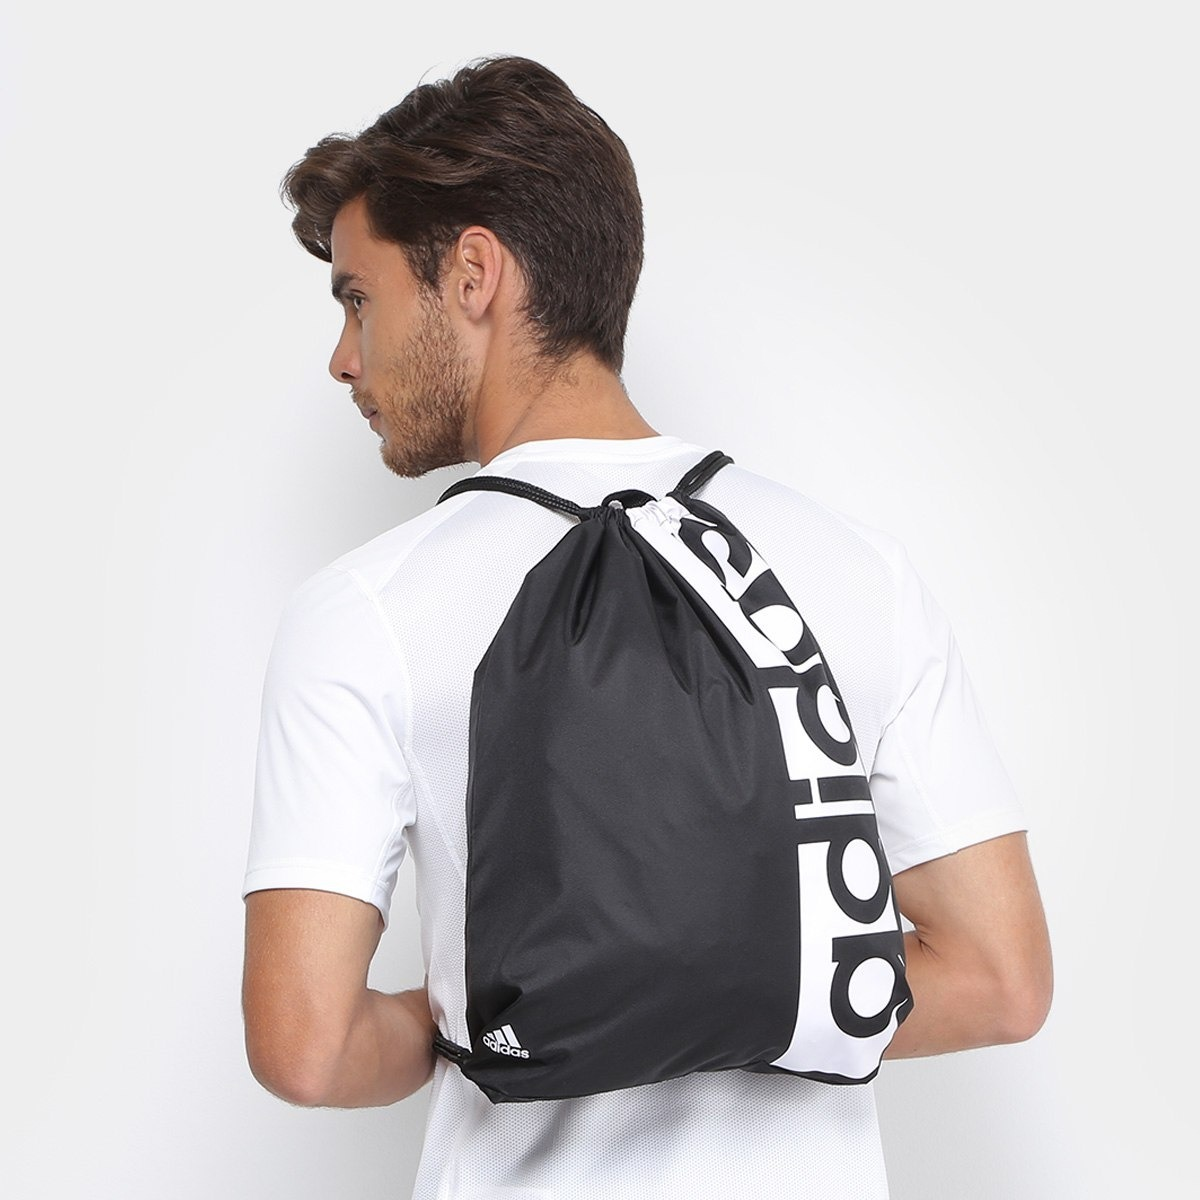 ad3e31d9 Bolsa Sacola adidas Gym Bag Linear Performance - R$ 56,90 em Mercado ...